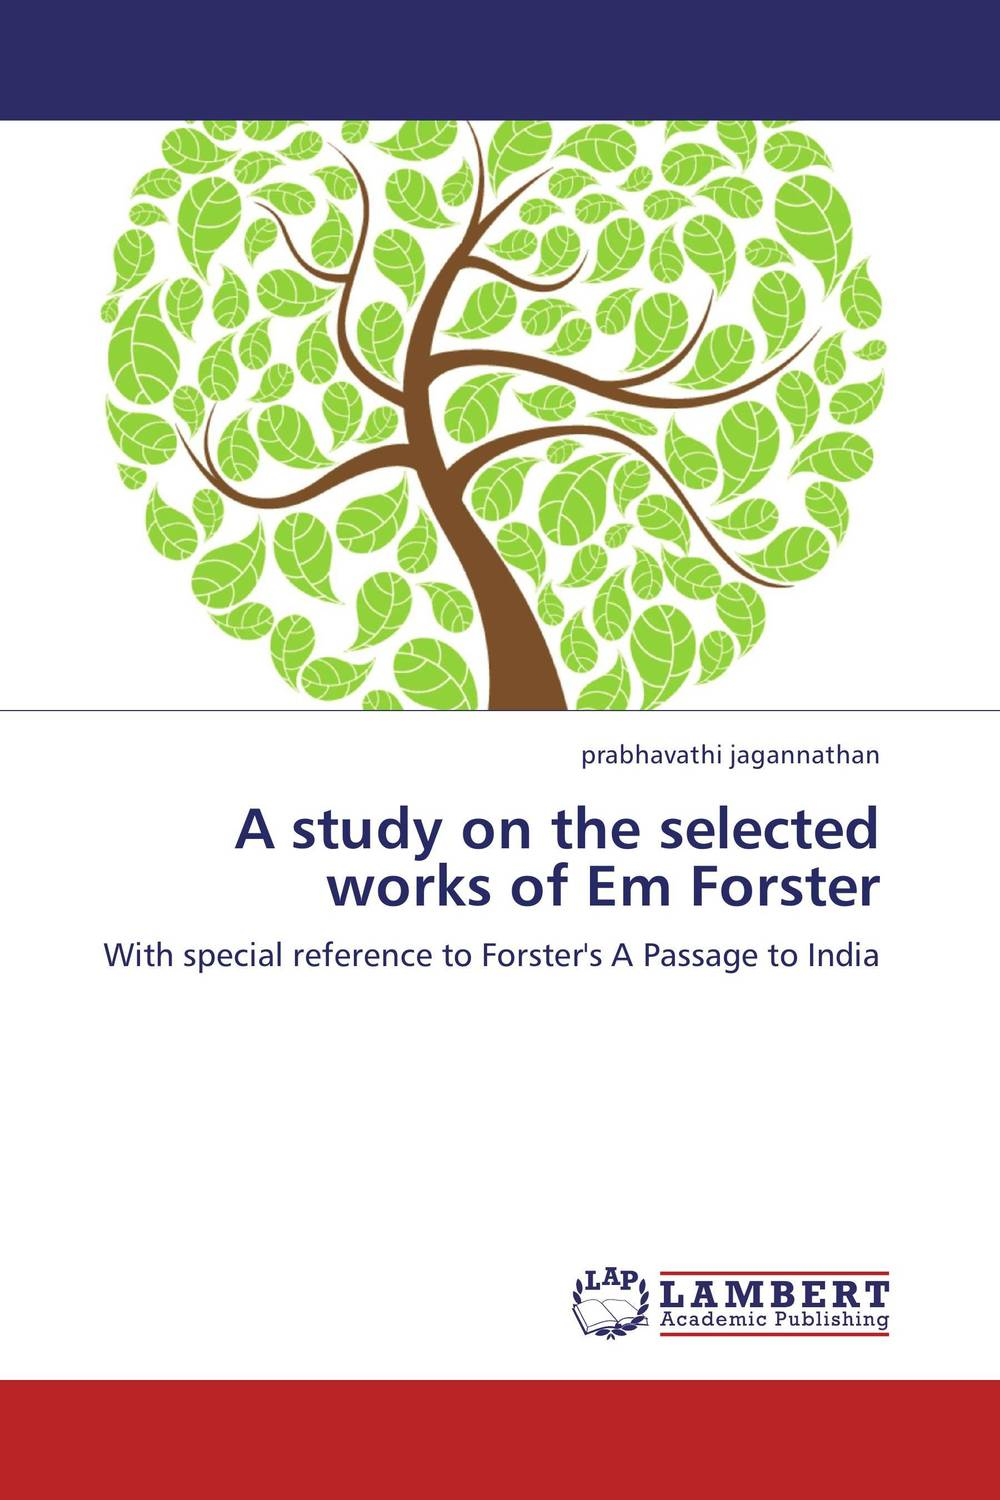 A study on the selected works of Em Forster a lyric architecture selected works of john malick and associates